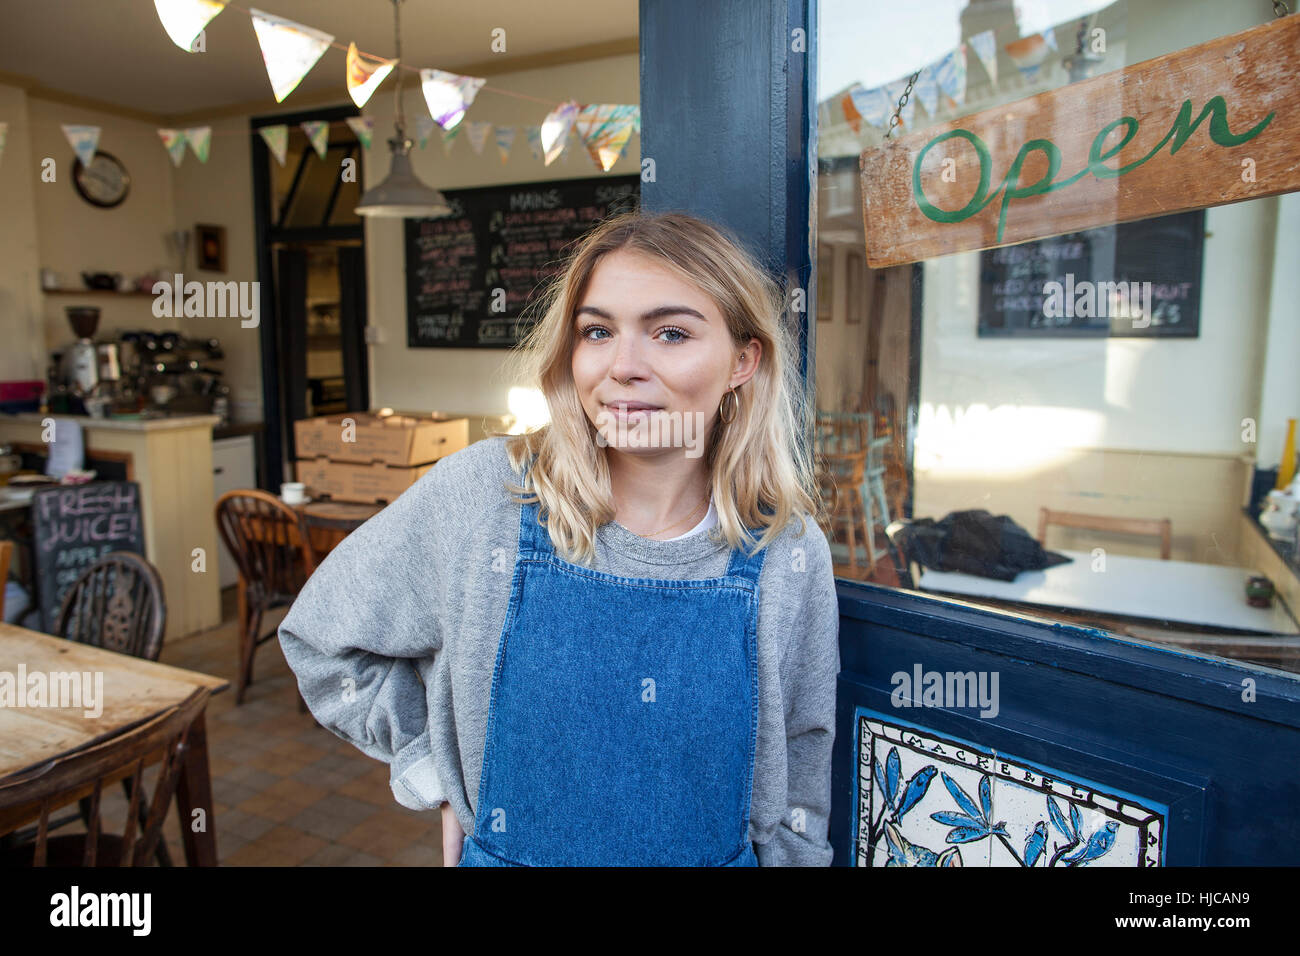 Portrait of young woman standing in doorway of cafe Stock Photo